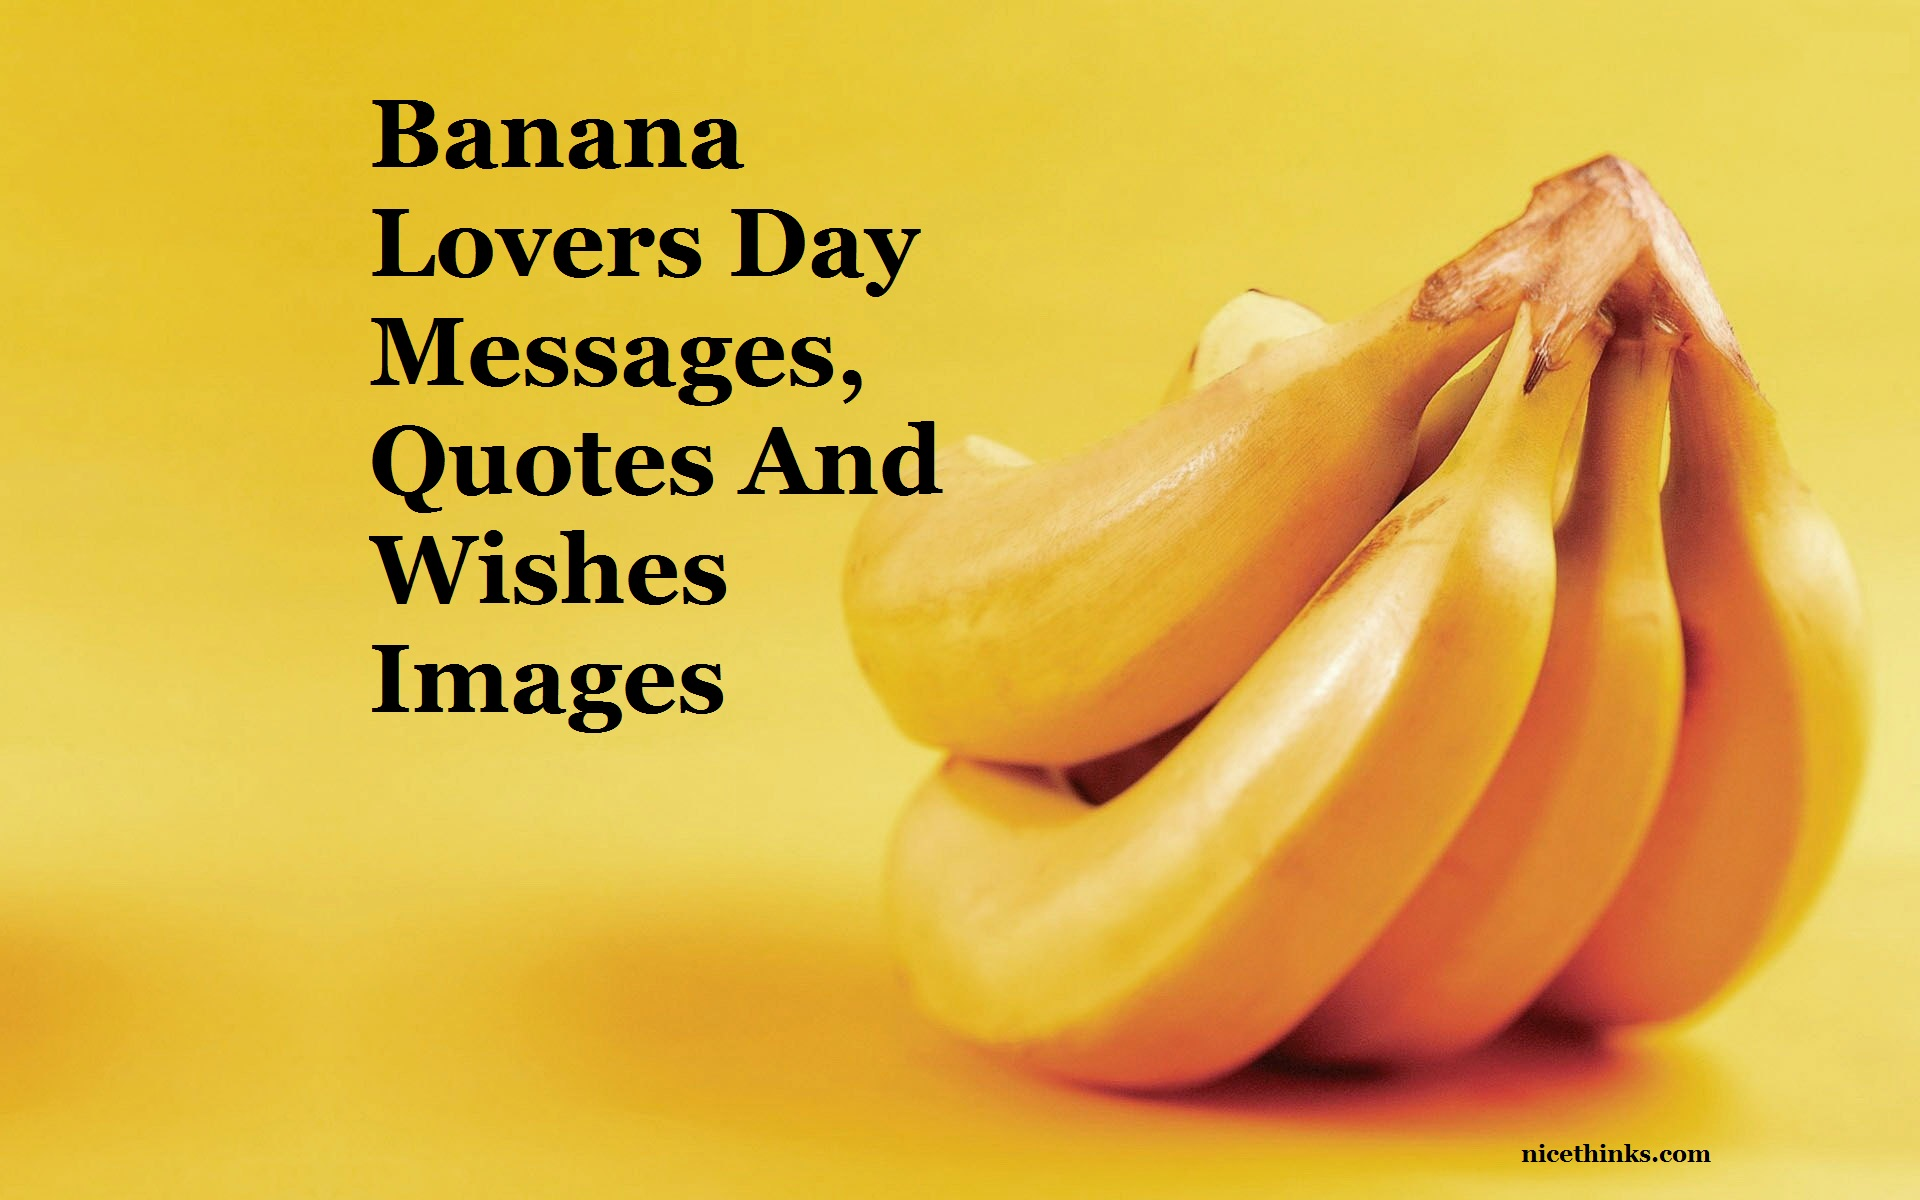 Banana LoversBanana Lovers Day Messages, Quotes And Wishes Images Day Messages, Quotes And Wishes Image